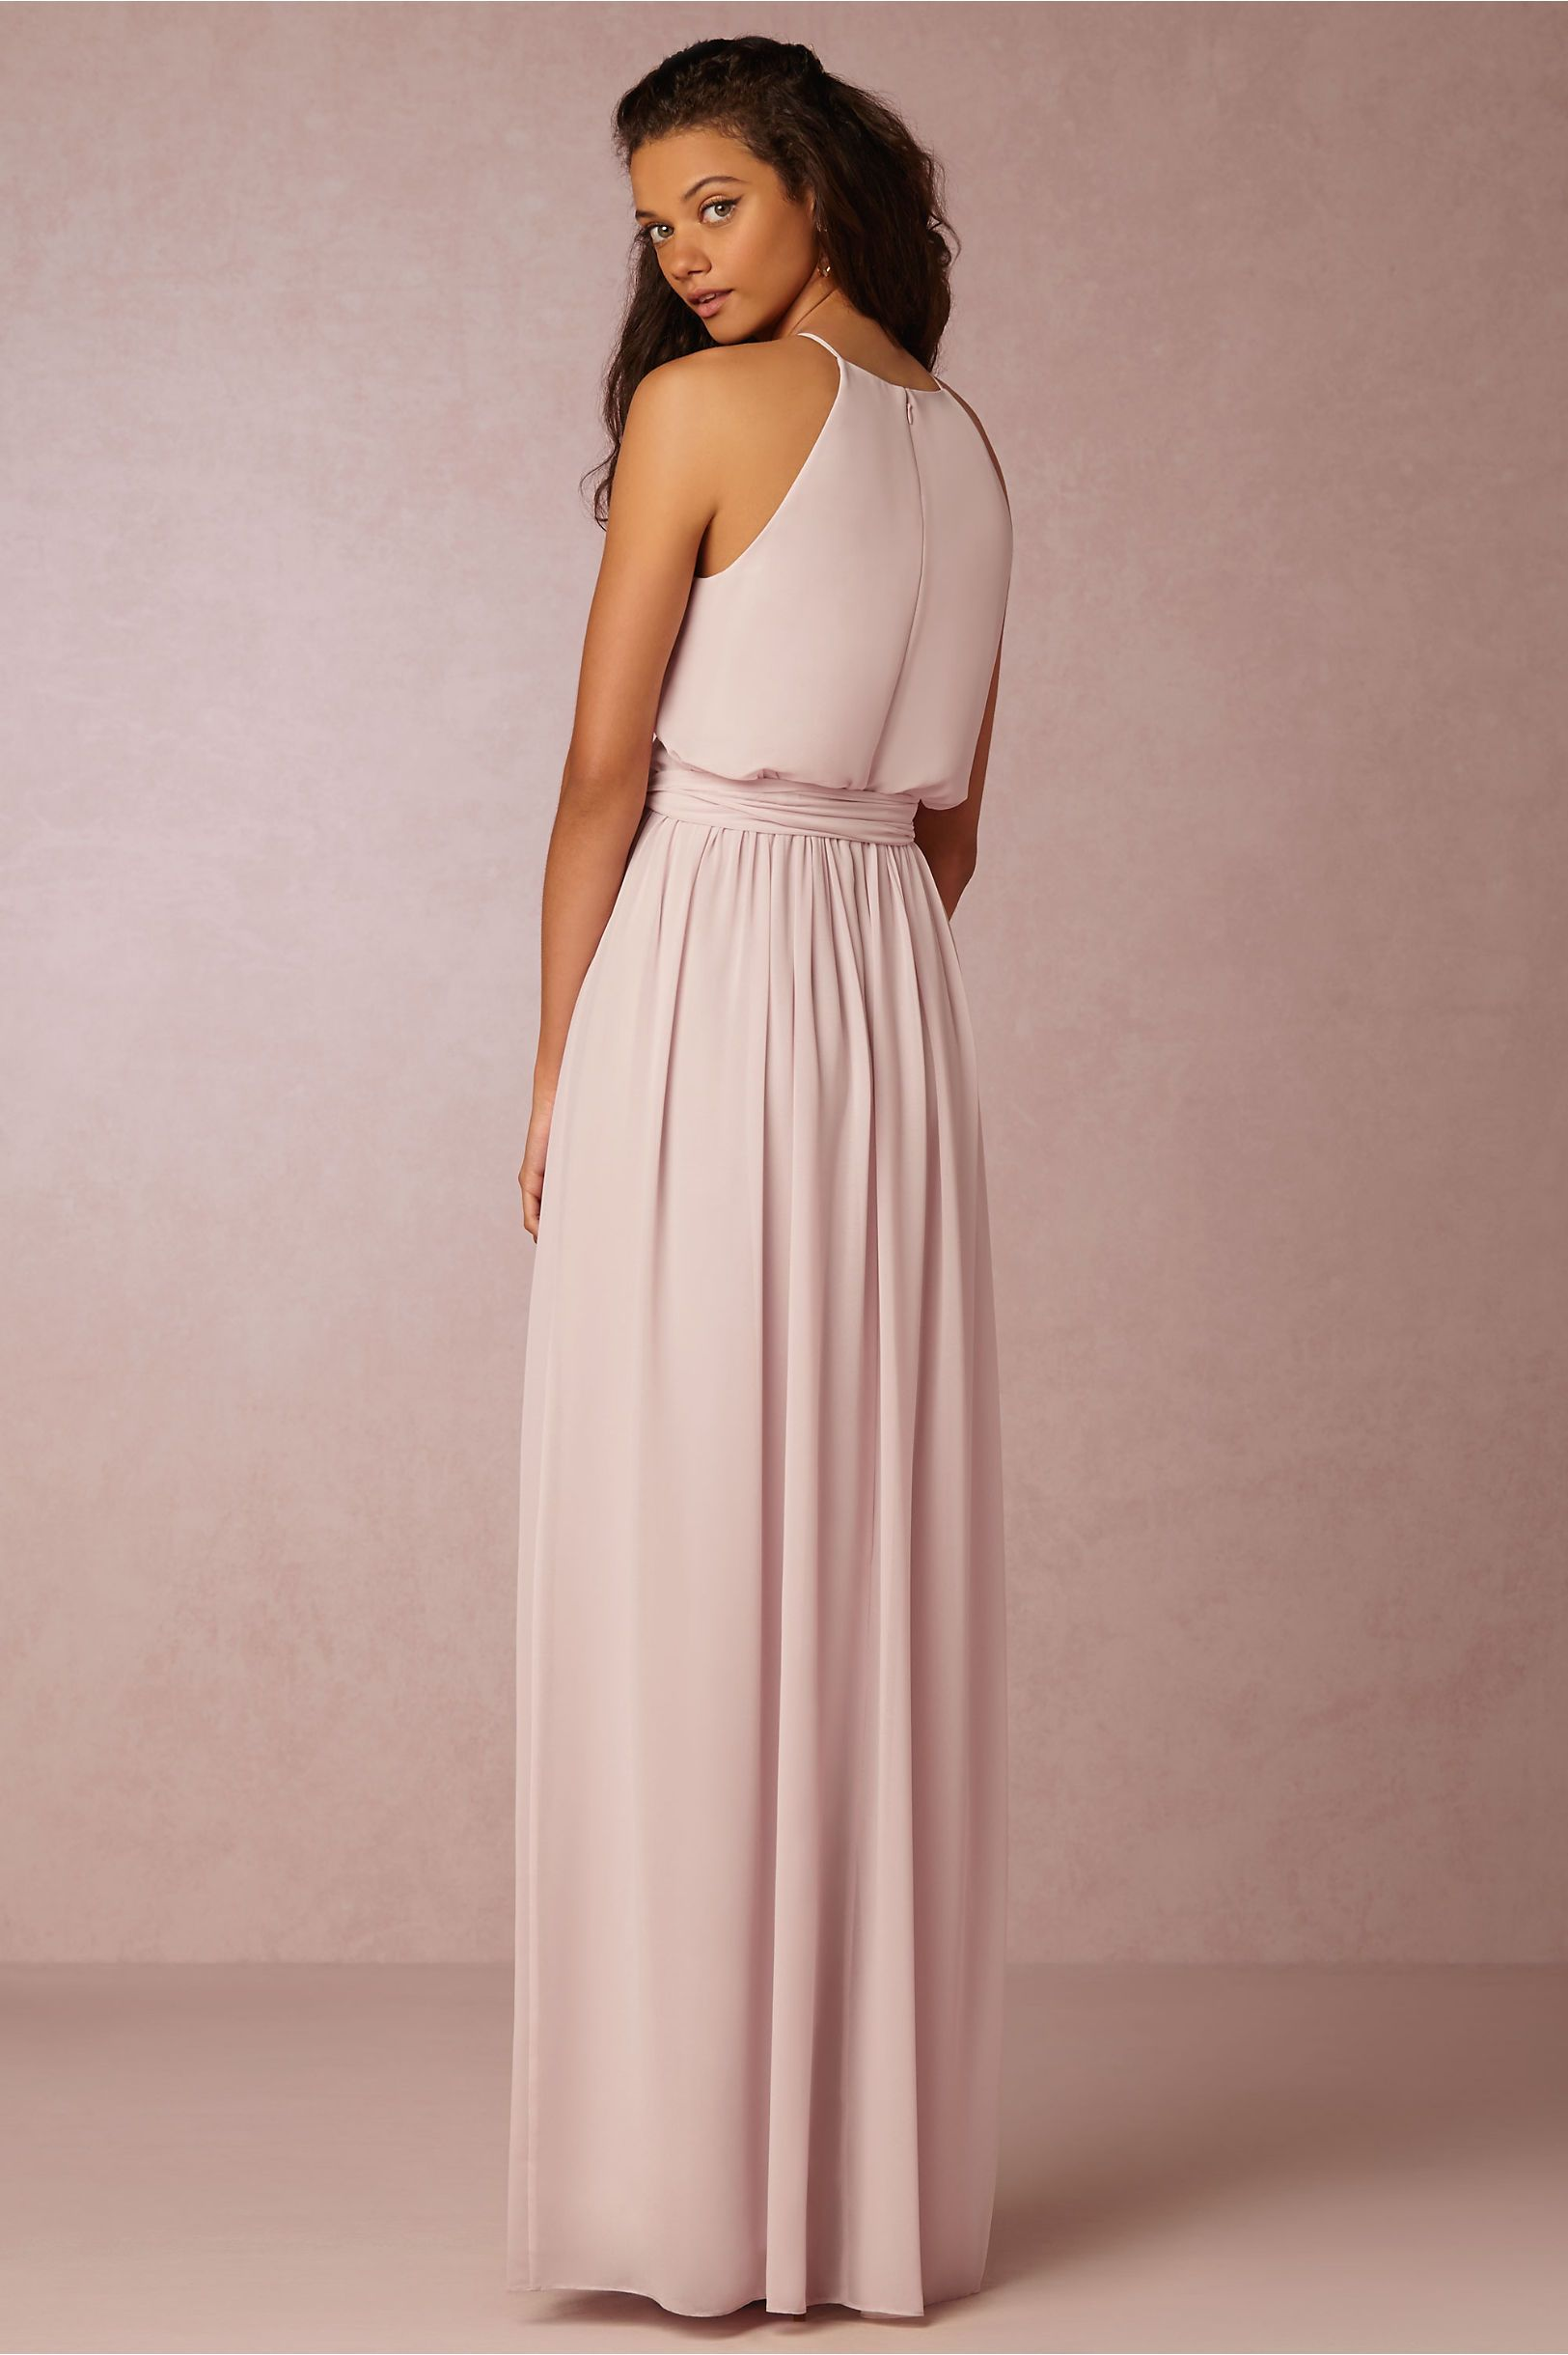 BHLDN Alana Dress in Bridesmaids View All Dresses at BHLDN | Wedding ...